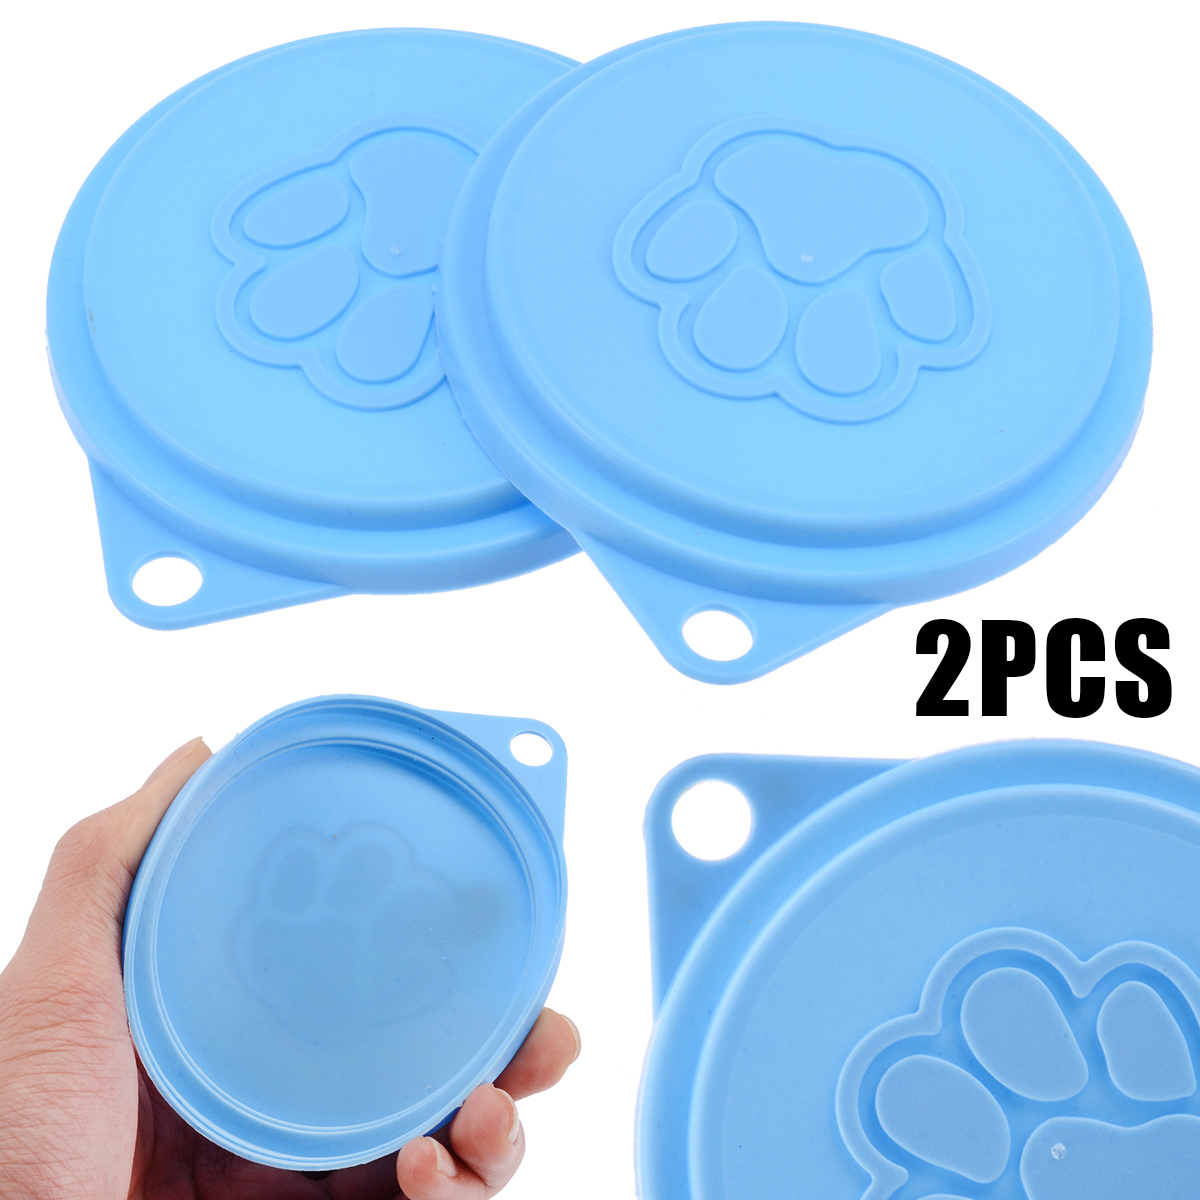 2pcs Reusable Pet Dog Cat Food Storage Can Tin Cover Lid Top Cap 88mm Random Color